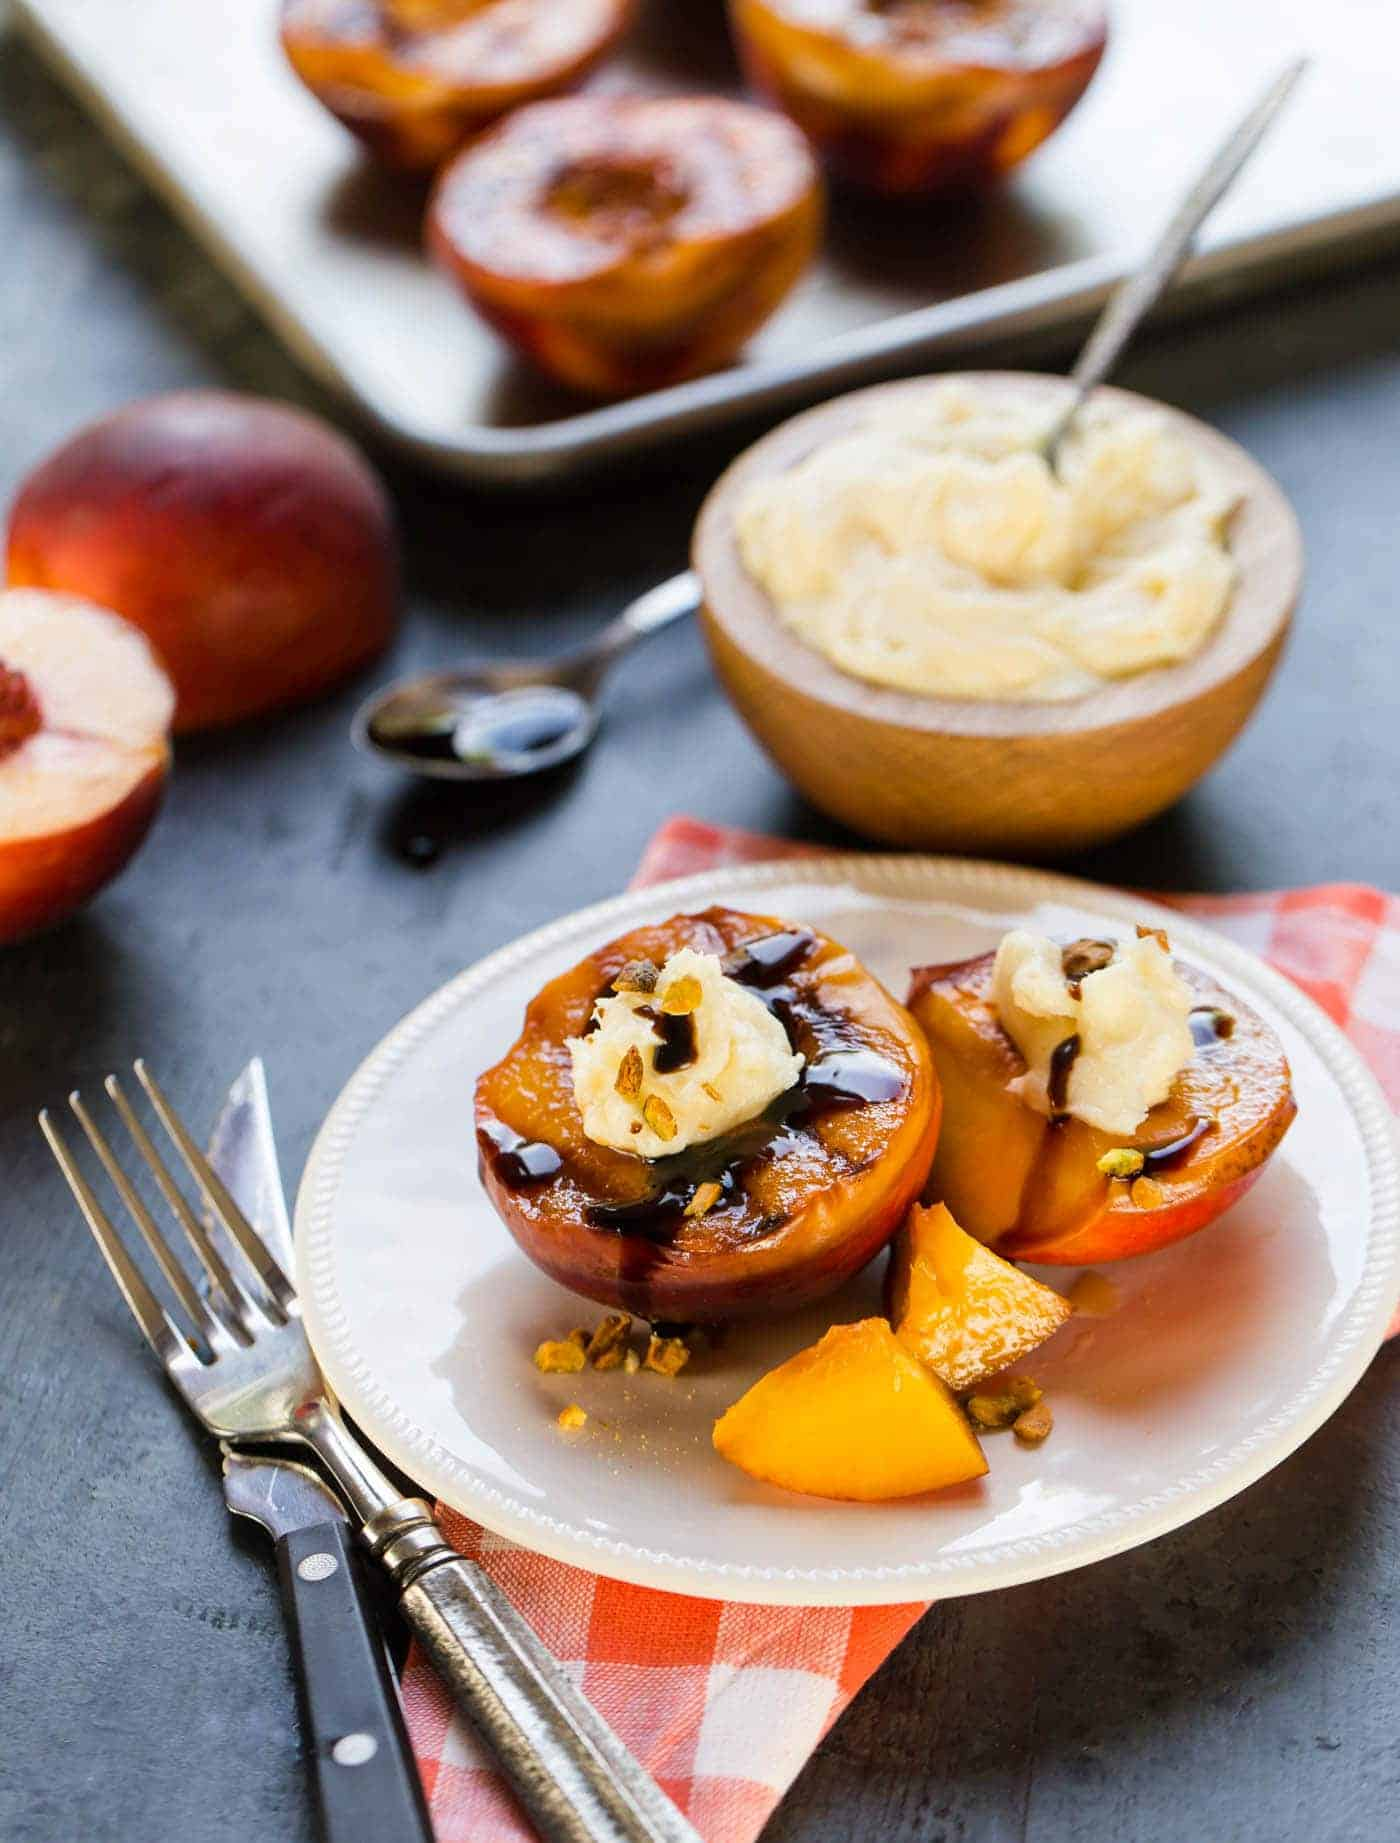 Grilling fruit brings out its natural sweetness, and these quick and easy Grilled Peaches with Mascarpone, Pistachios and Balsamic Glaze is a delicious way to end a summer BBQ!